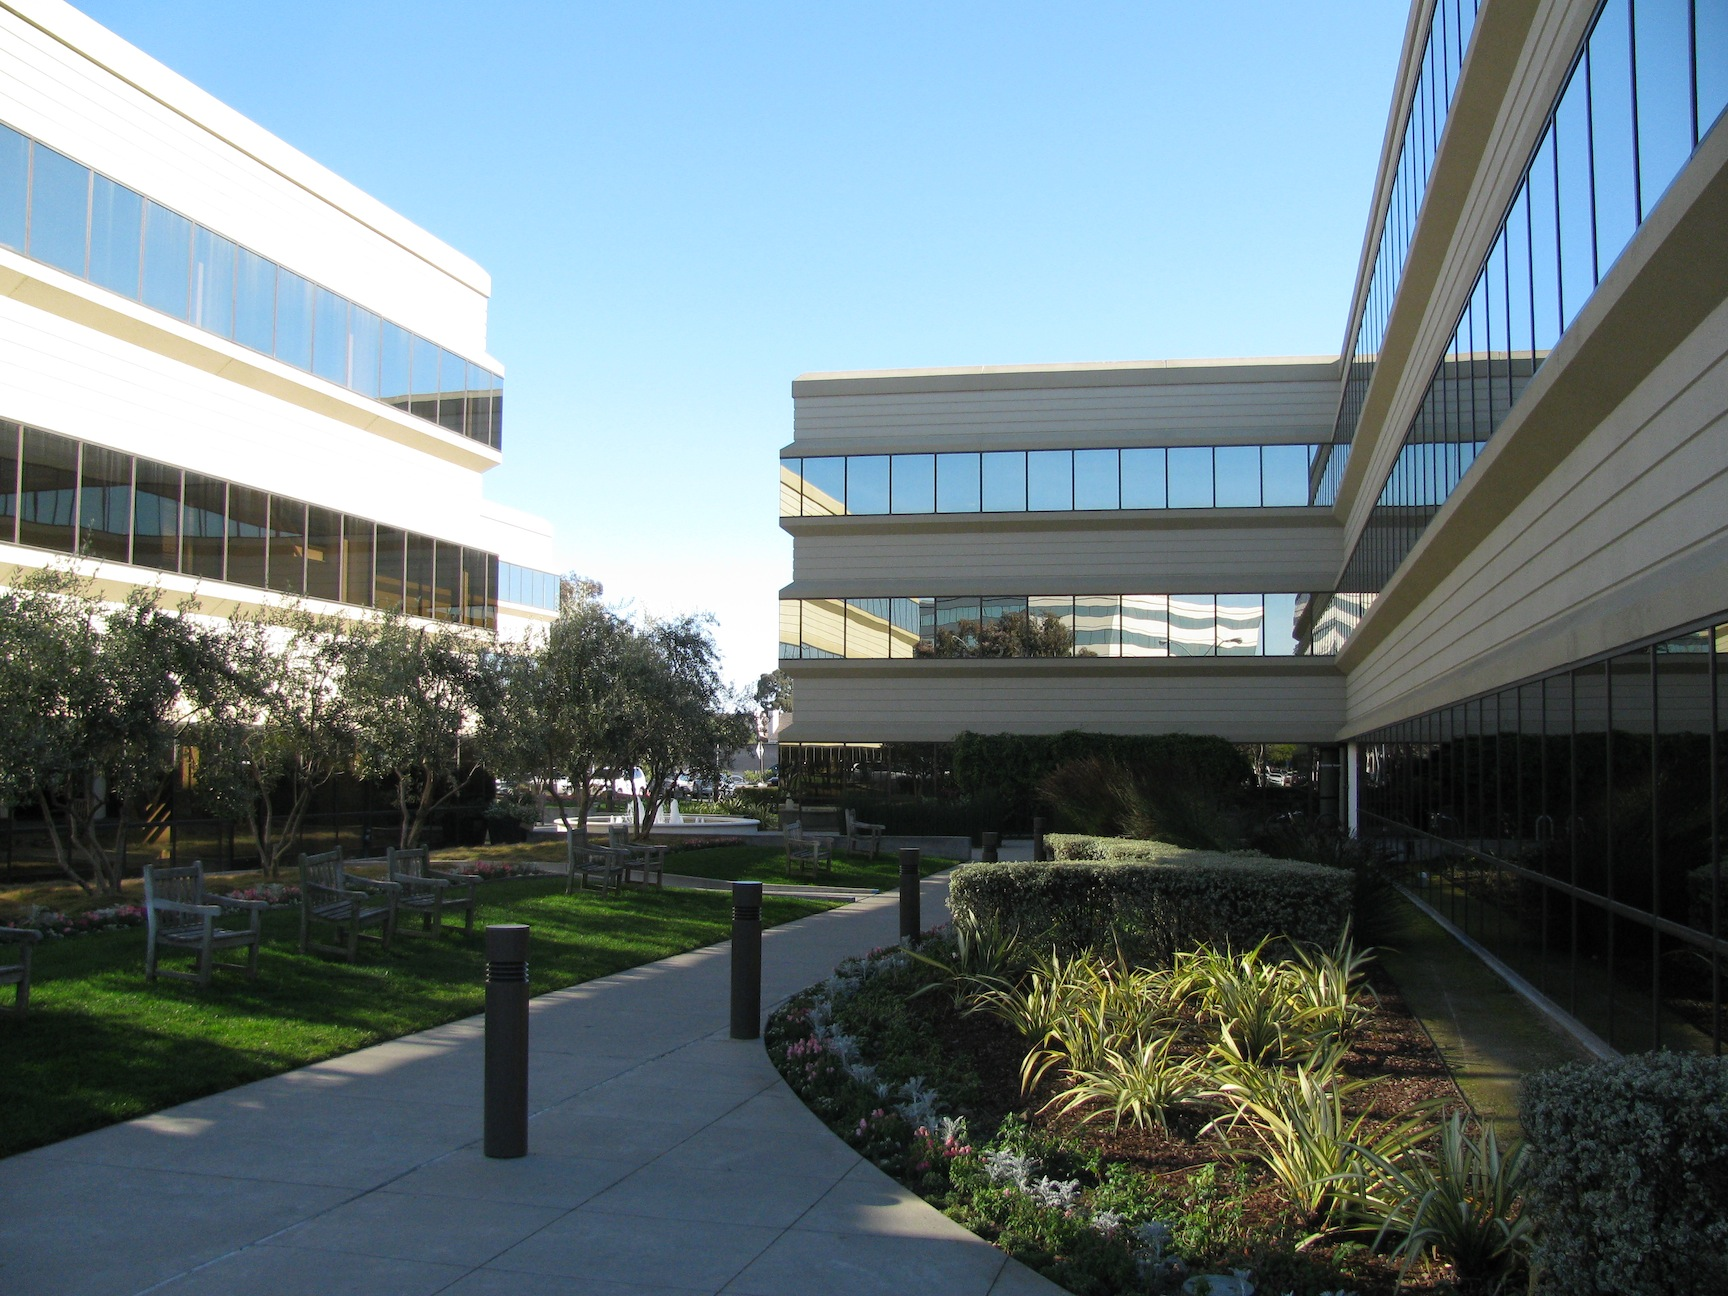 New York Life Buys San Mateo Office Park for $49MM